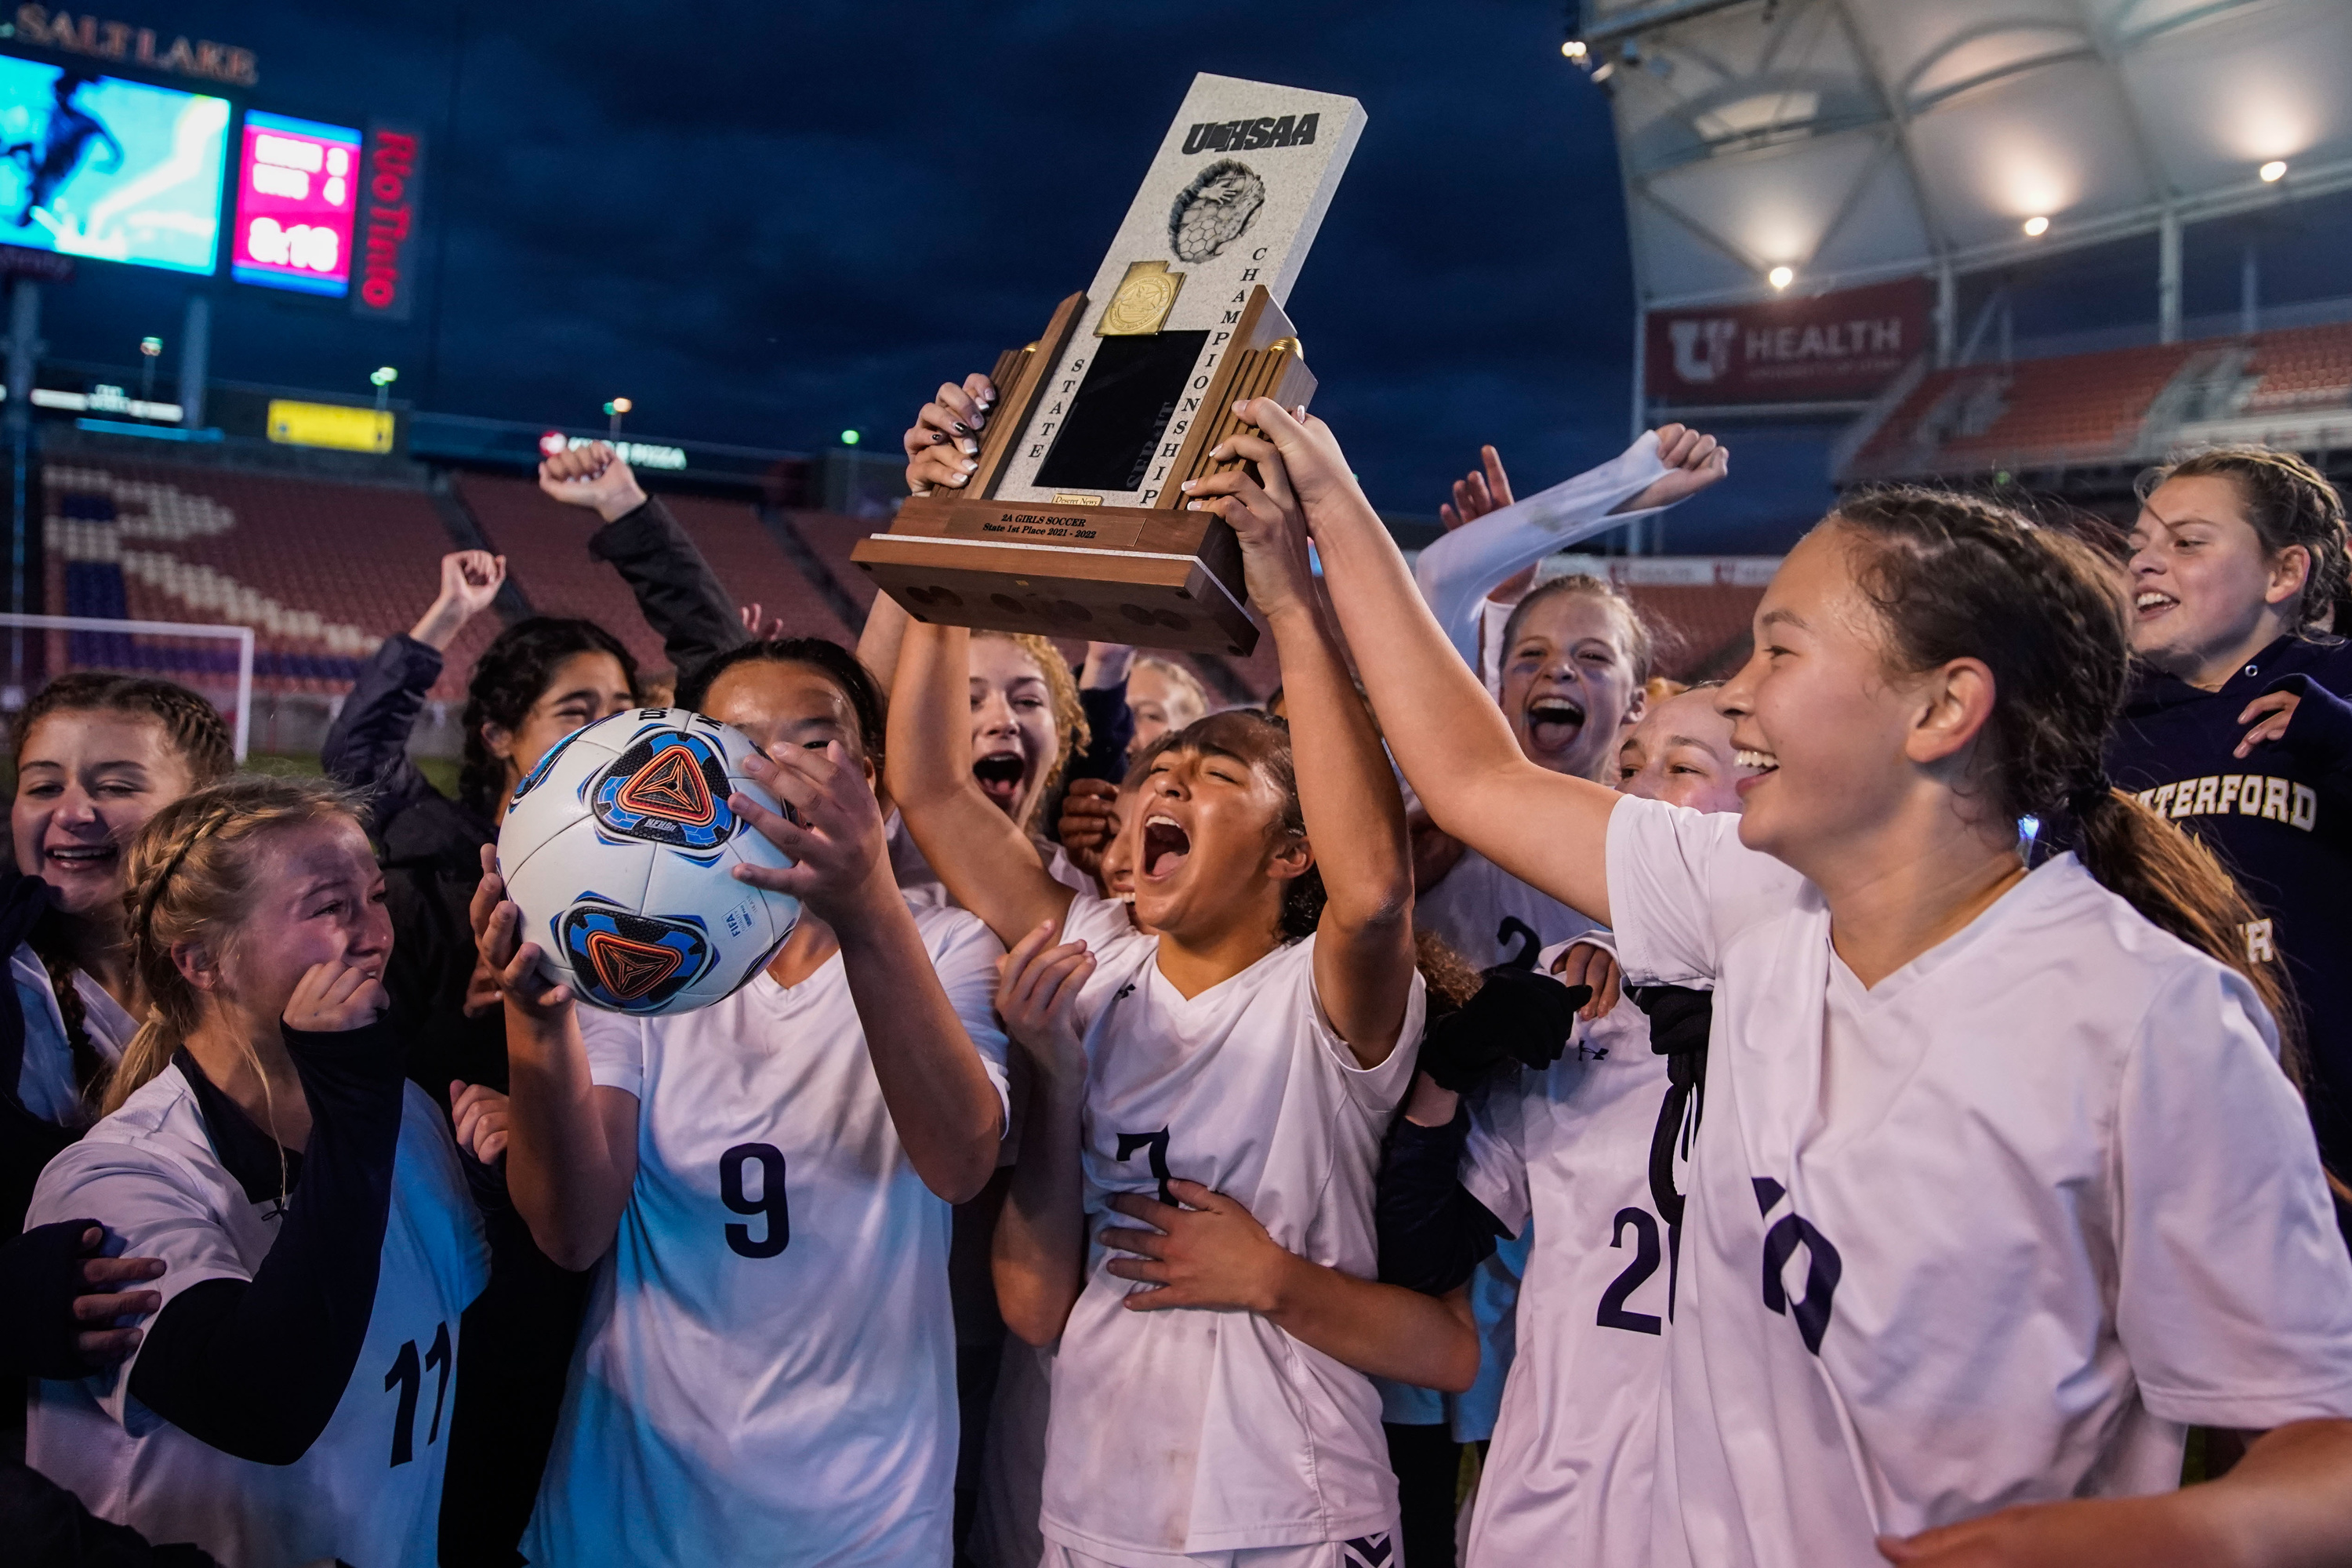 Waterford's Seven Castain, center, and her teammates celebrate their final goal against Rowland Hall High during the end of the second half of the 2A girls soccer state championship game on Saturday, Oct. 23, 2021 at Rio Tinto Stadium in Sandy .